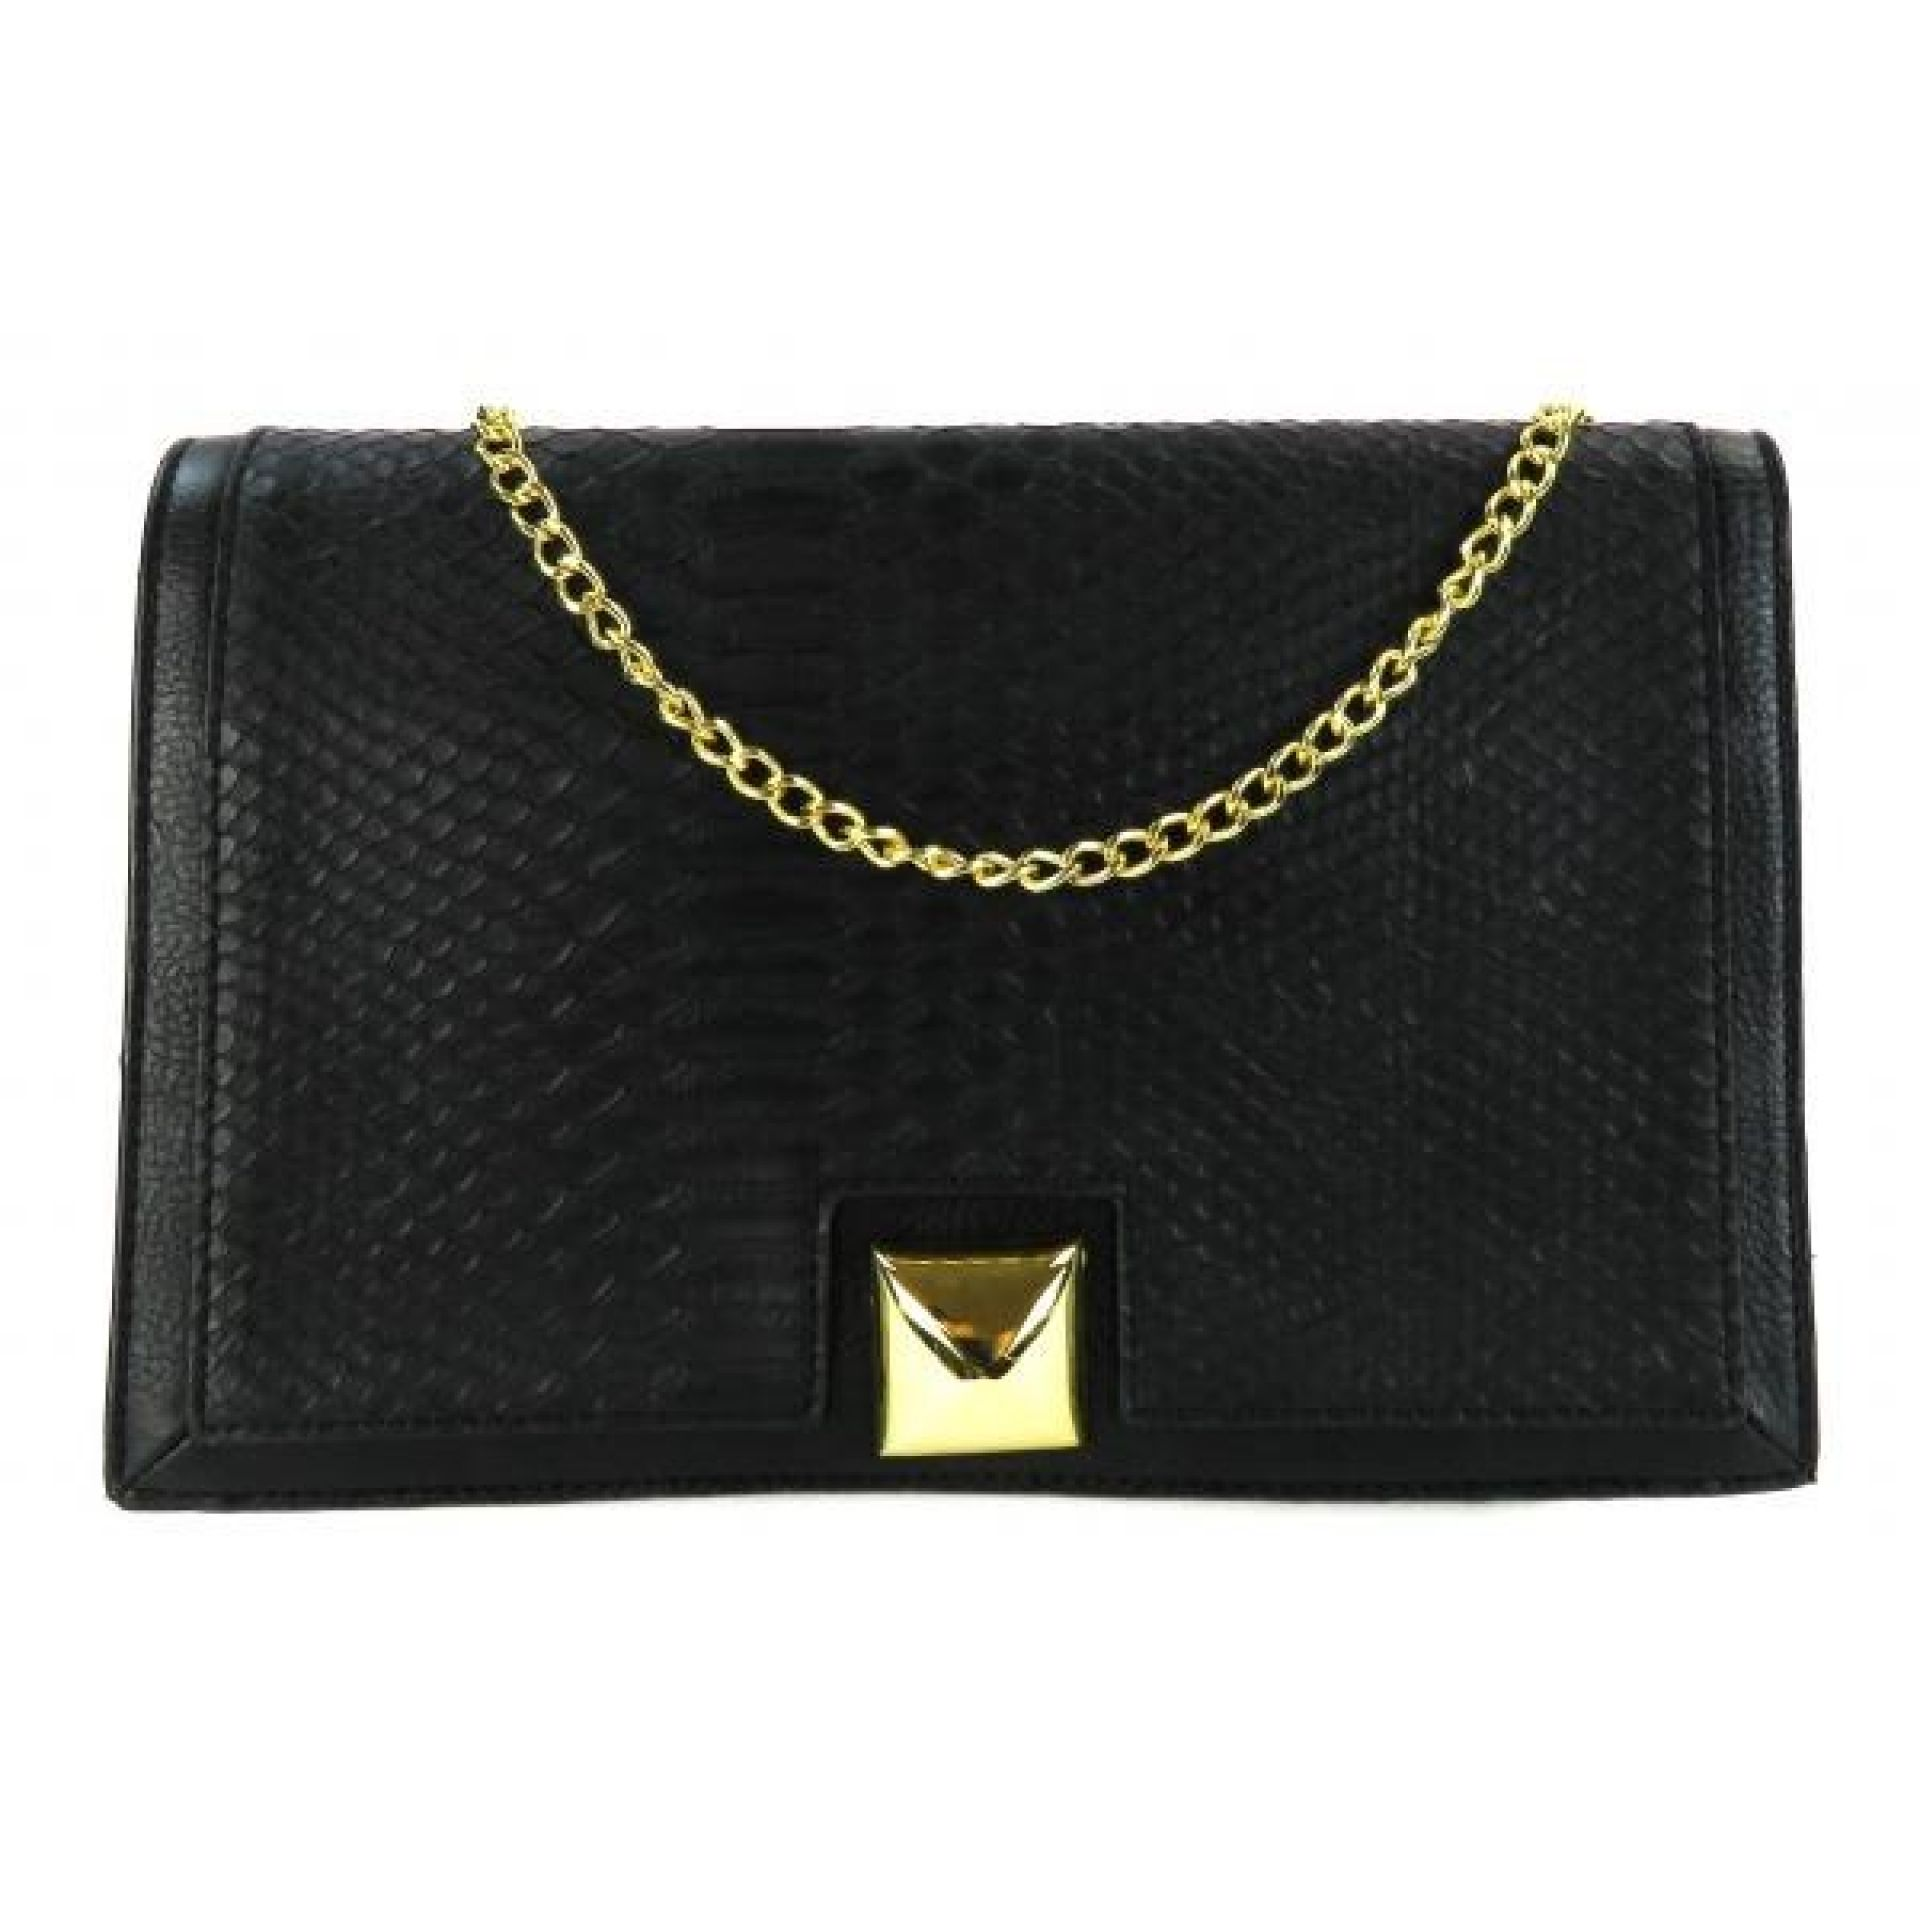 Neiman Marcus Black Snake Embossed Faux Leather Flap Shoulder Bag